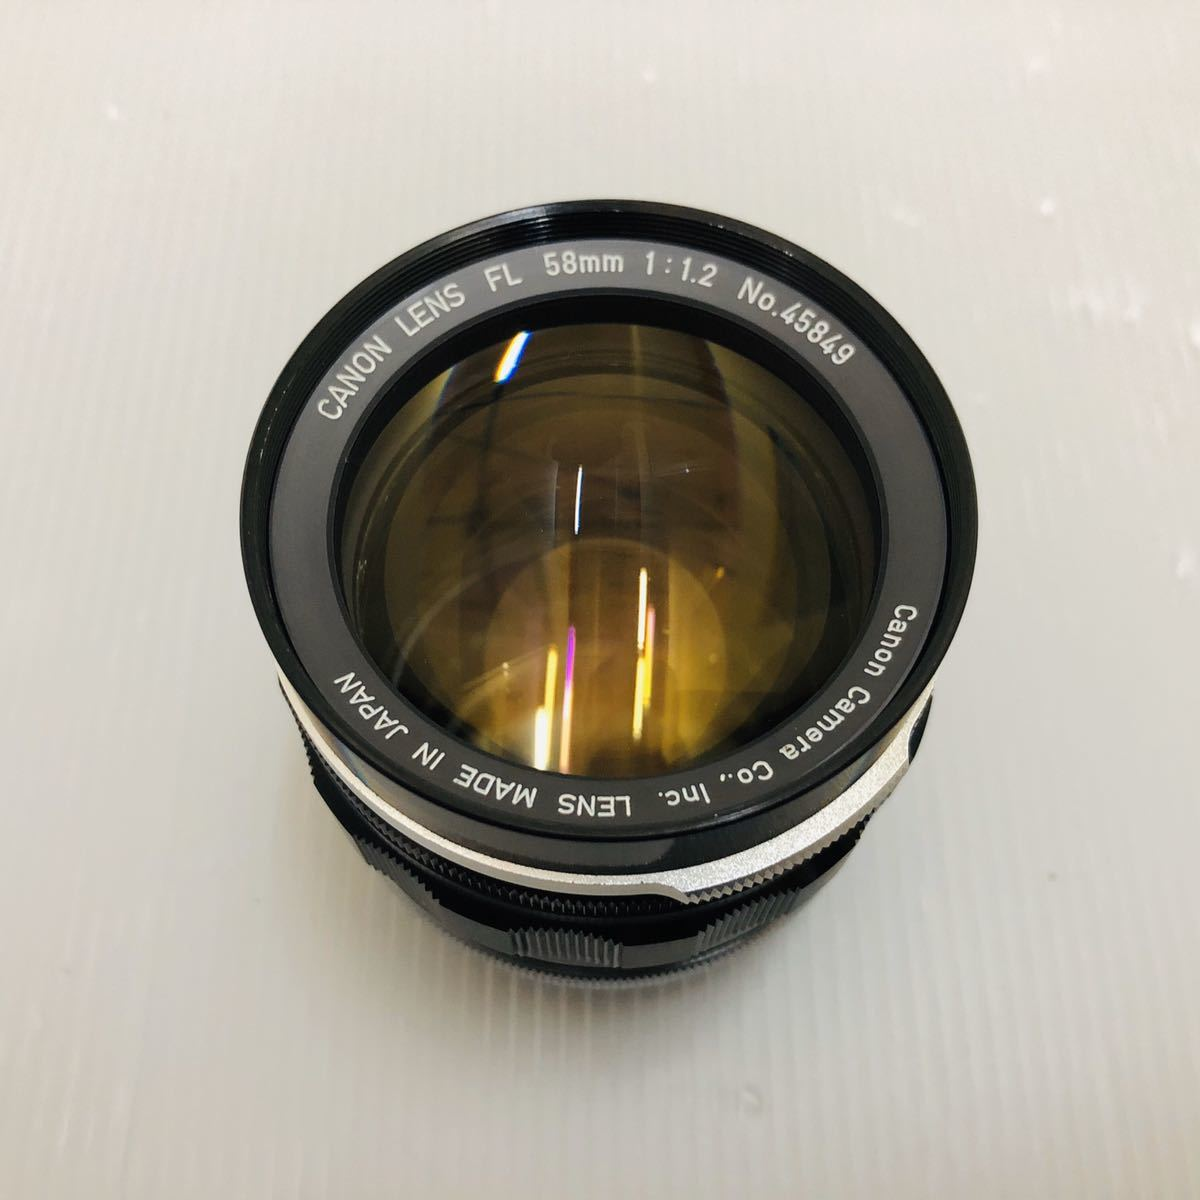 Canon Lens FL 85mm 1:1.2 No.45849